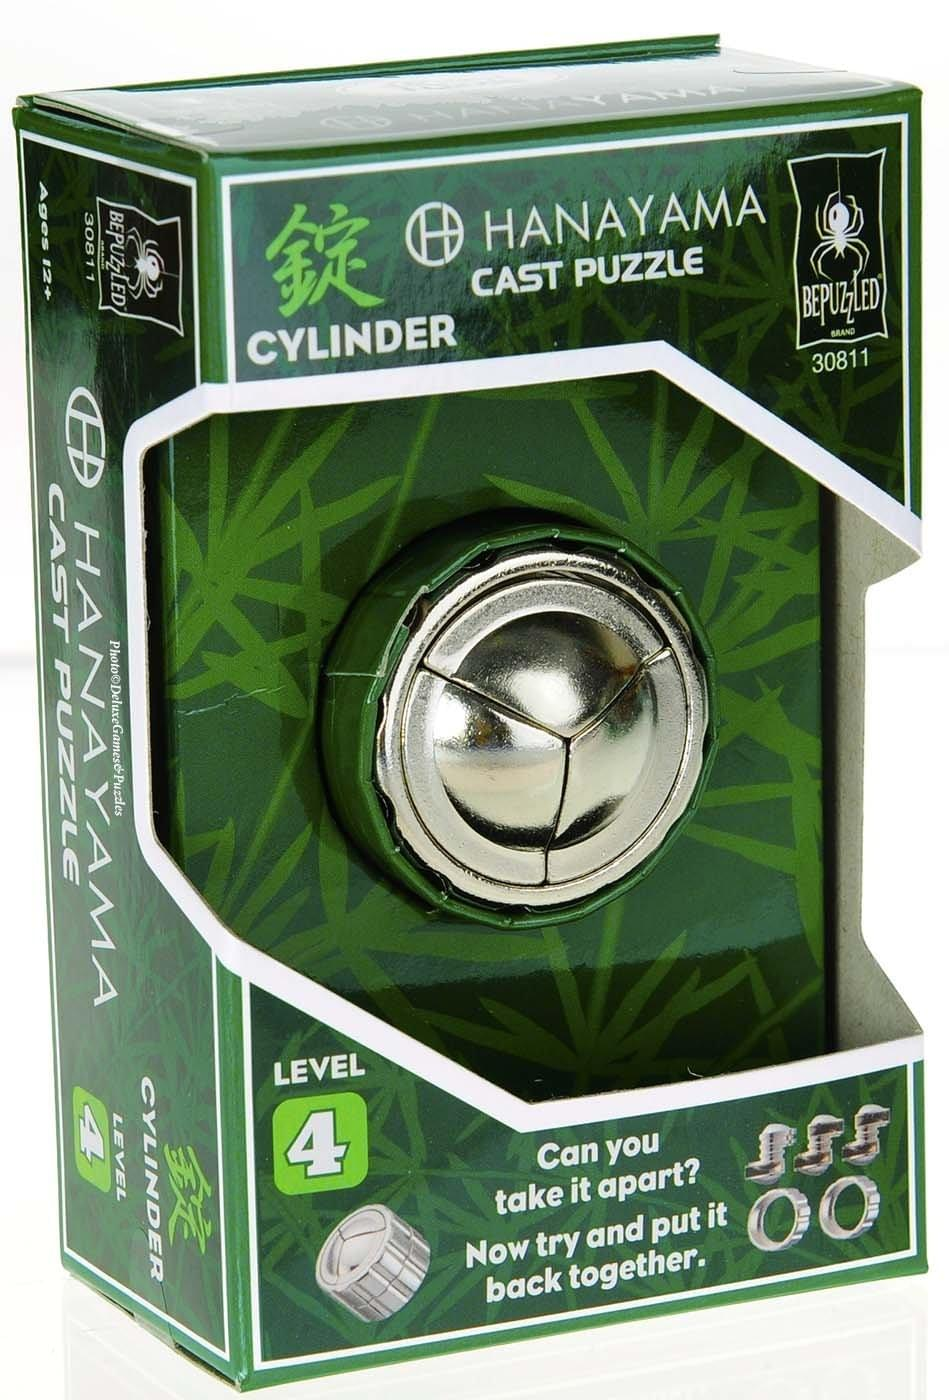 Hanayama Level 4 Cast Metal Brain Teaser Puzzle - Cylinder